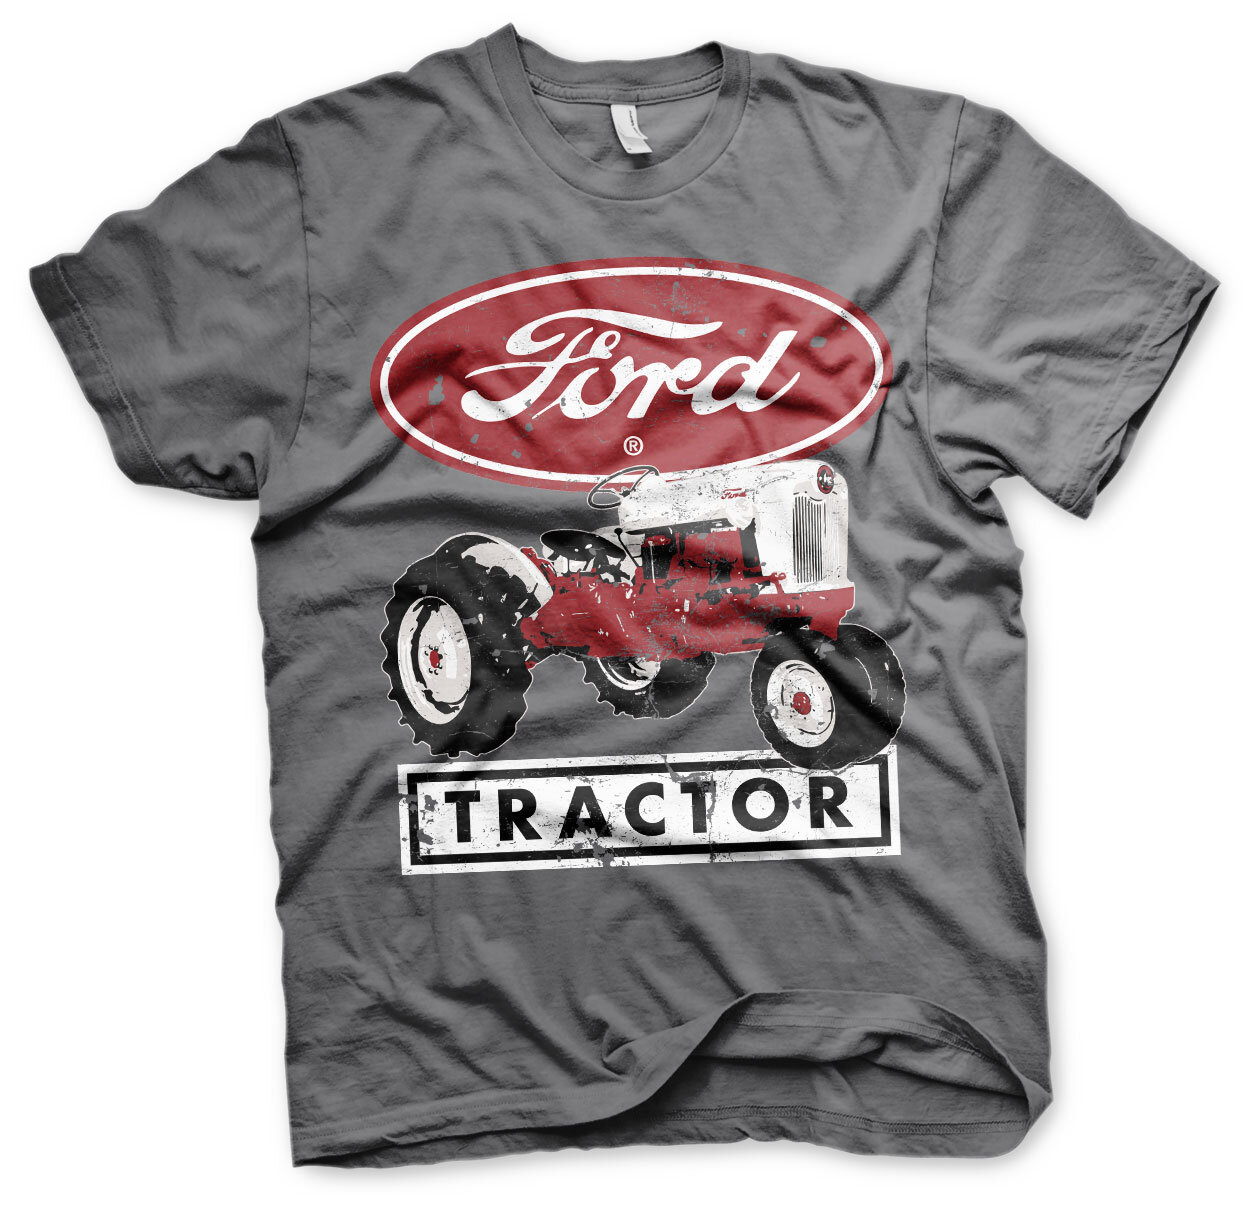 Ford Tractor T-Shirt